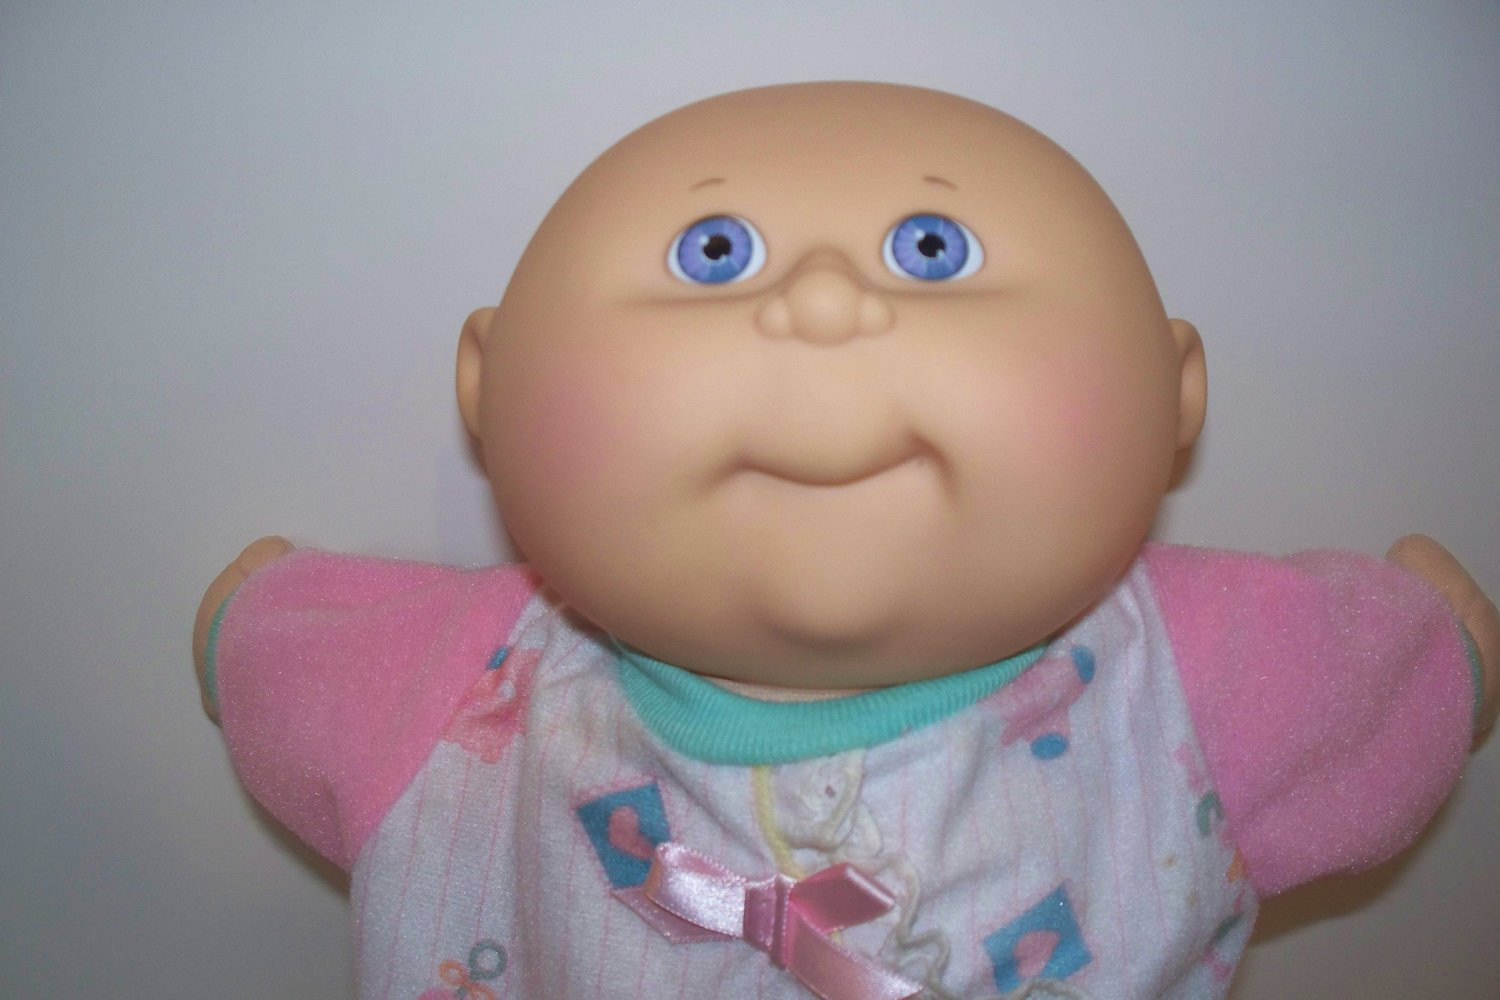 Cabbage Patch Doll Fresh Vintage Dolls Cabbage Patch Dolls 1991 Baby Cabbage Patch Of Superb 40 Models Cabbage Patch Doll